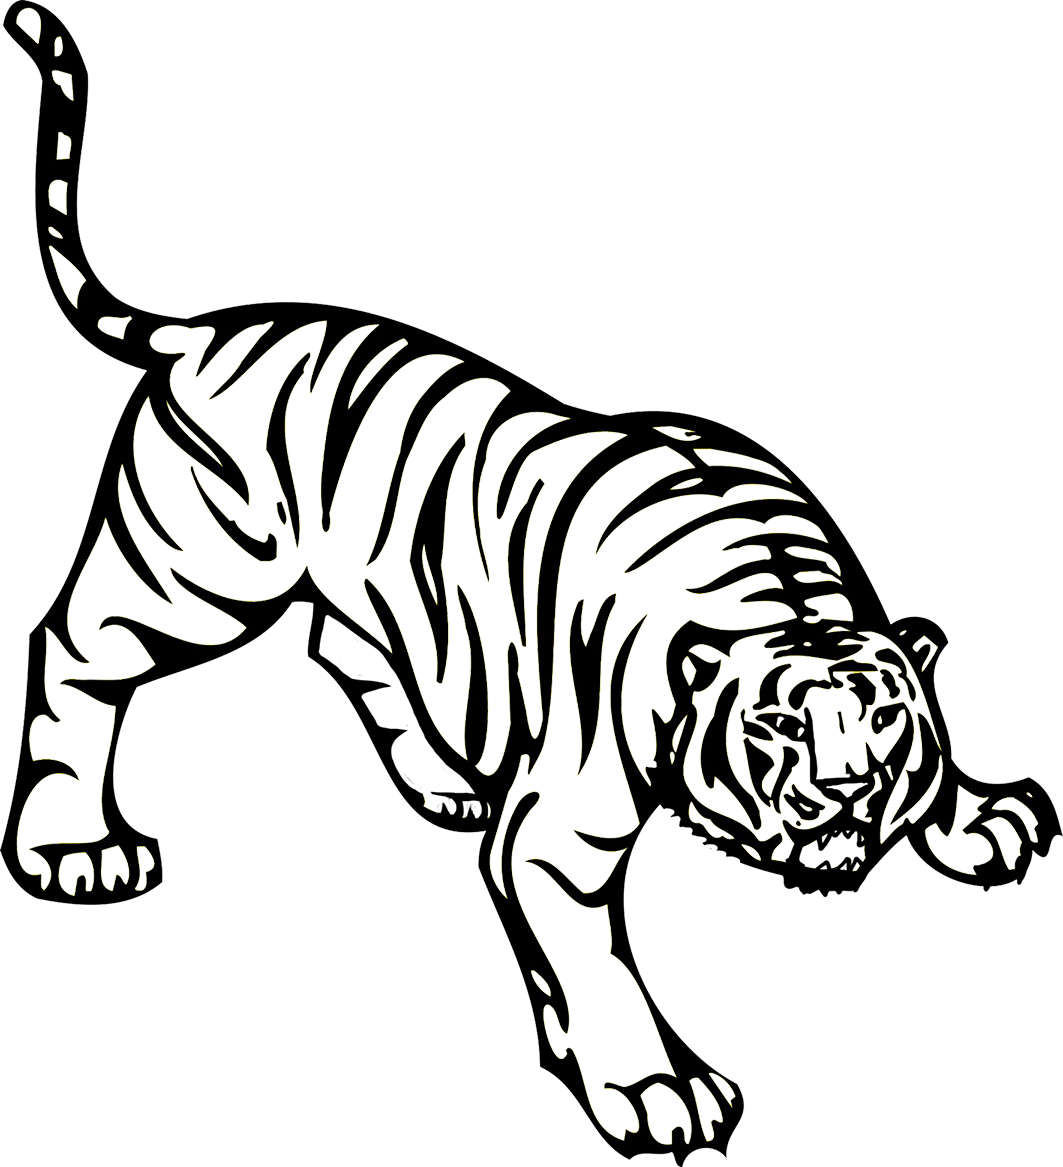 angry tiger attacking image PNG